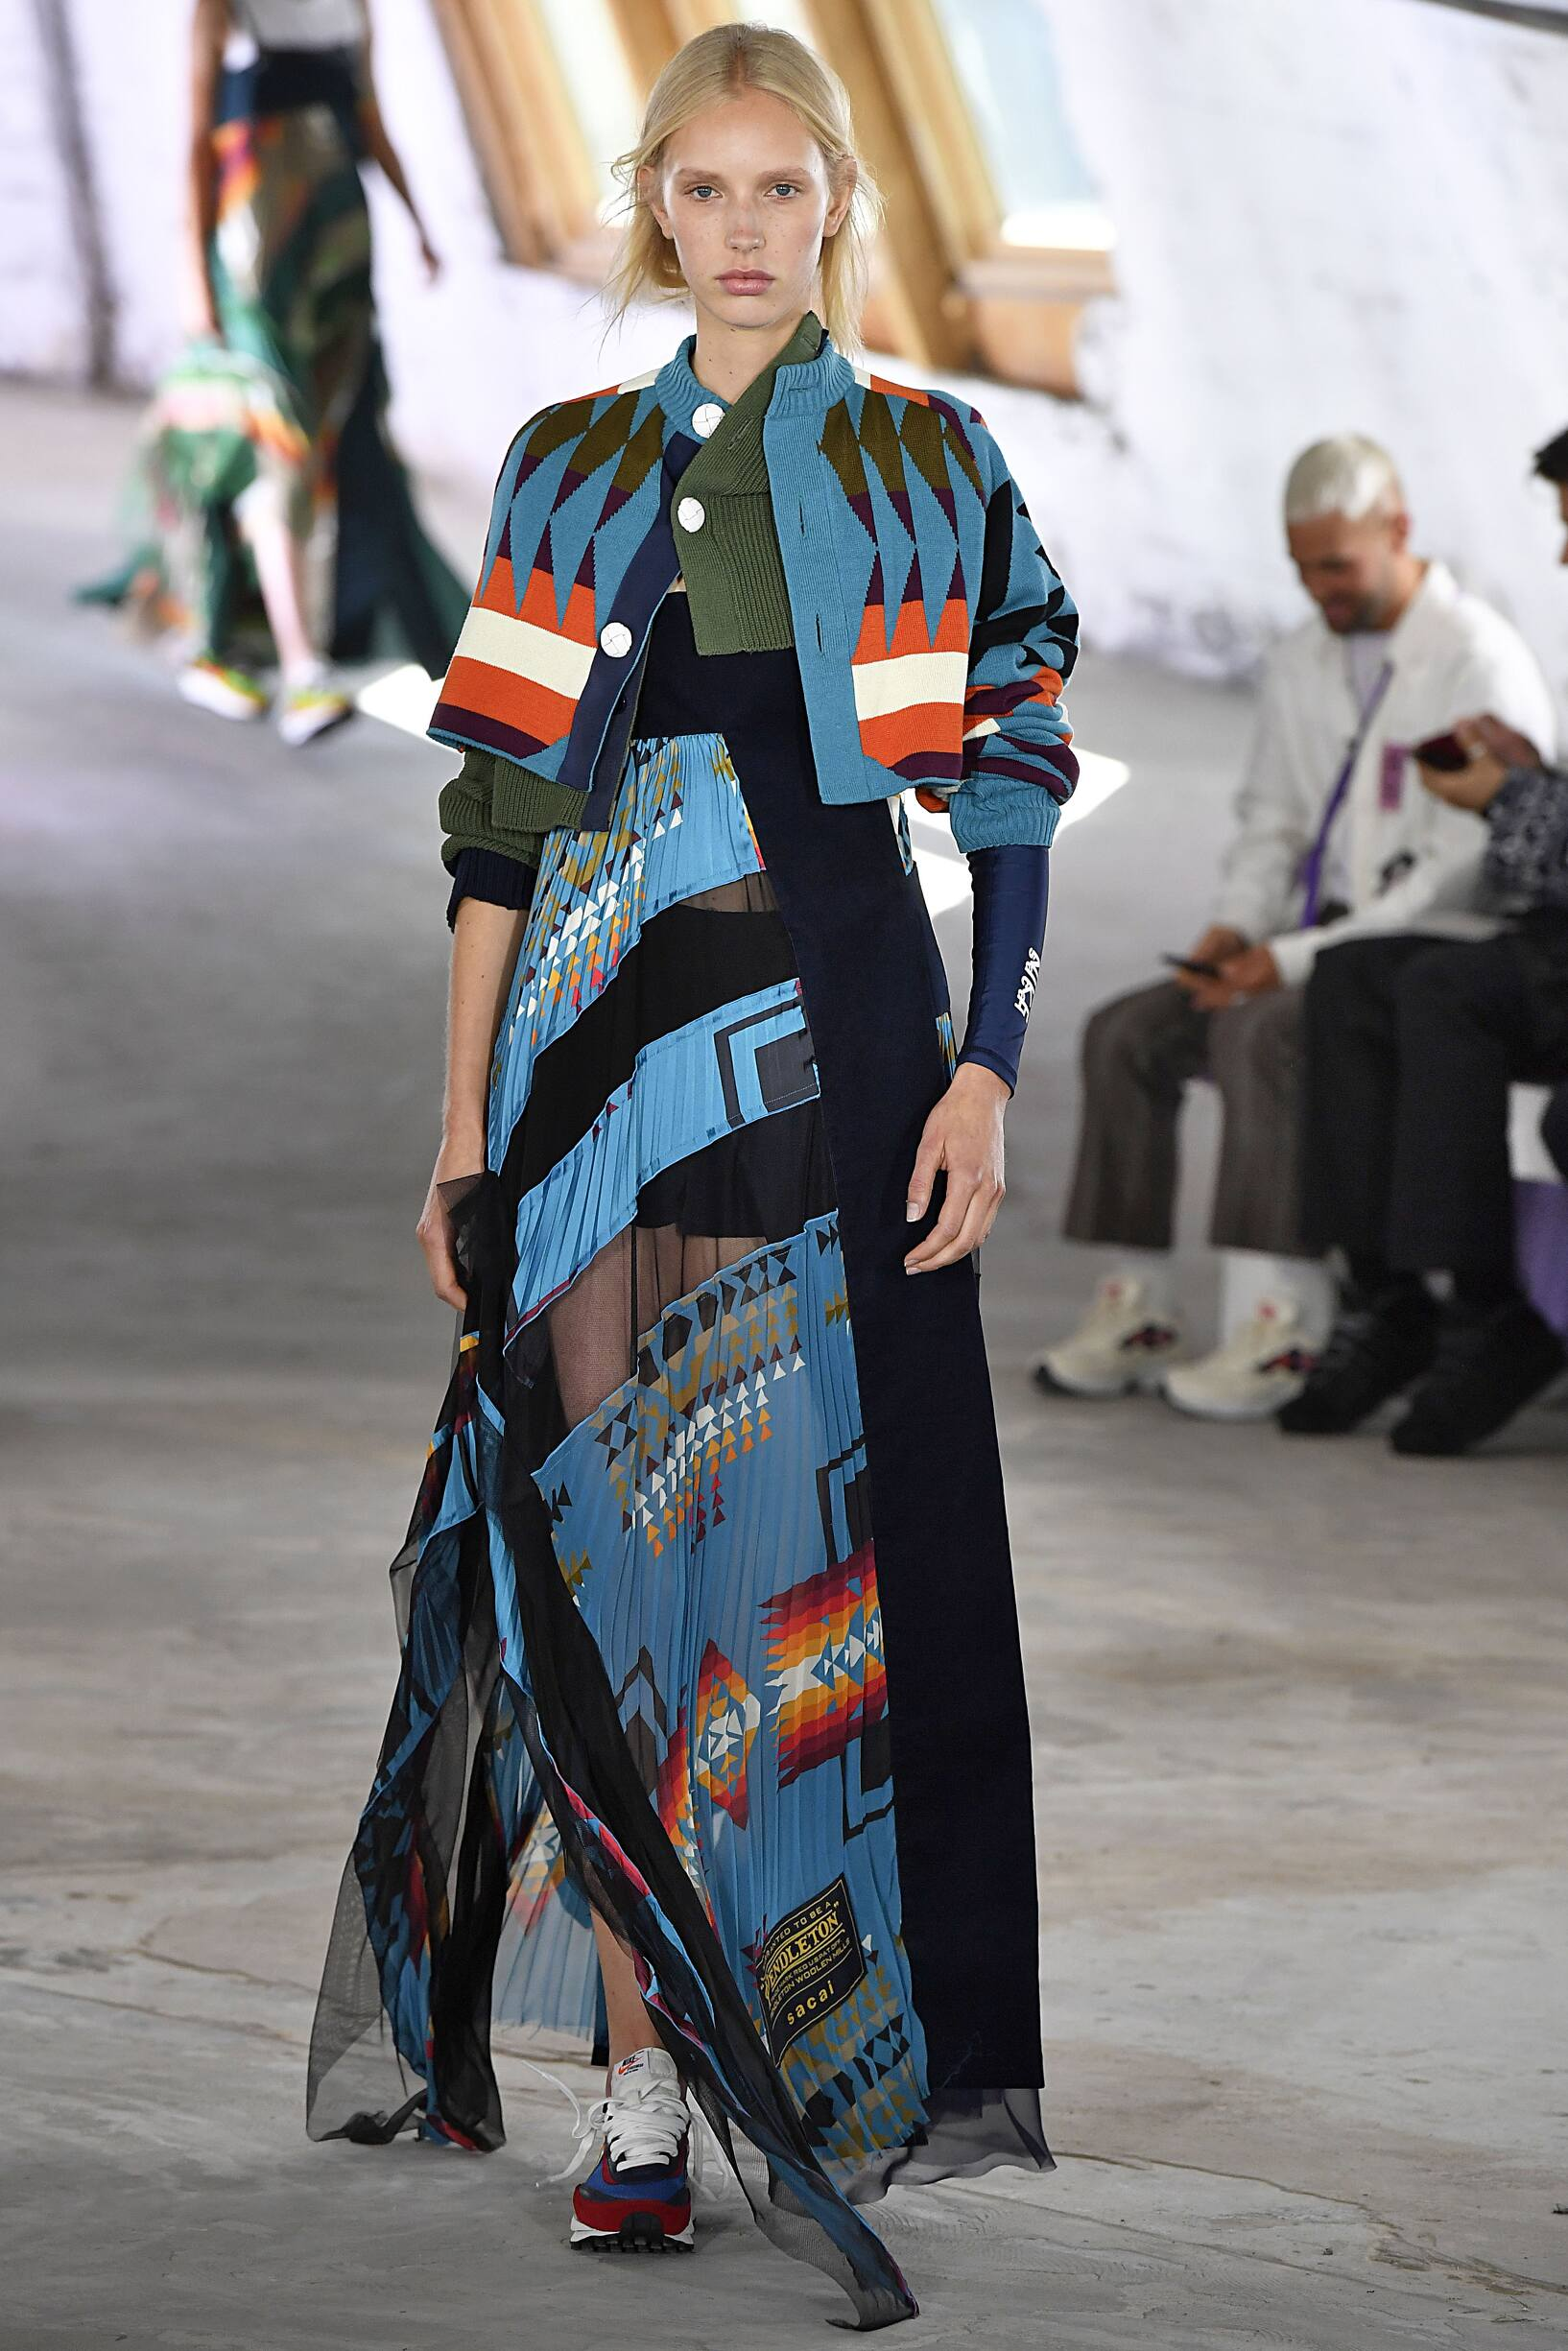 Sacai Spring Summer 2019 Collection  The Skinny Beep